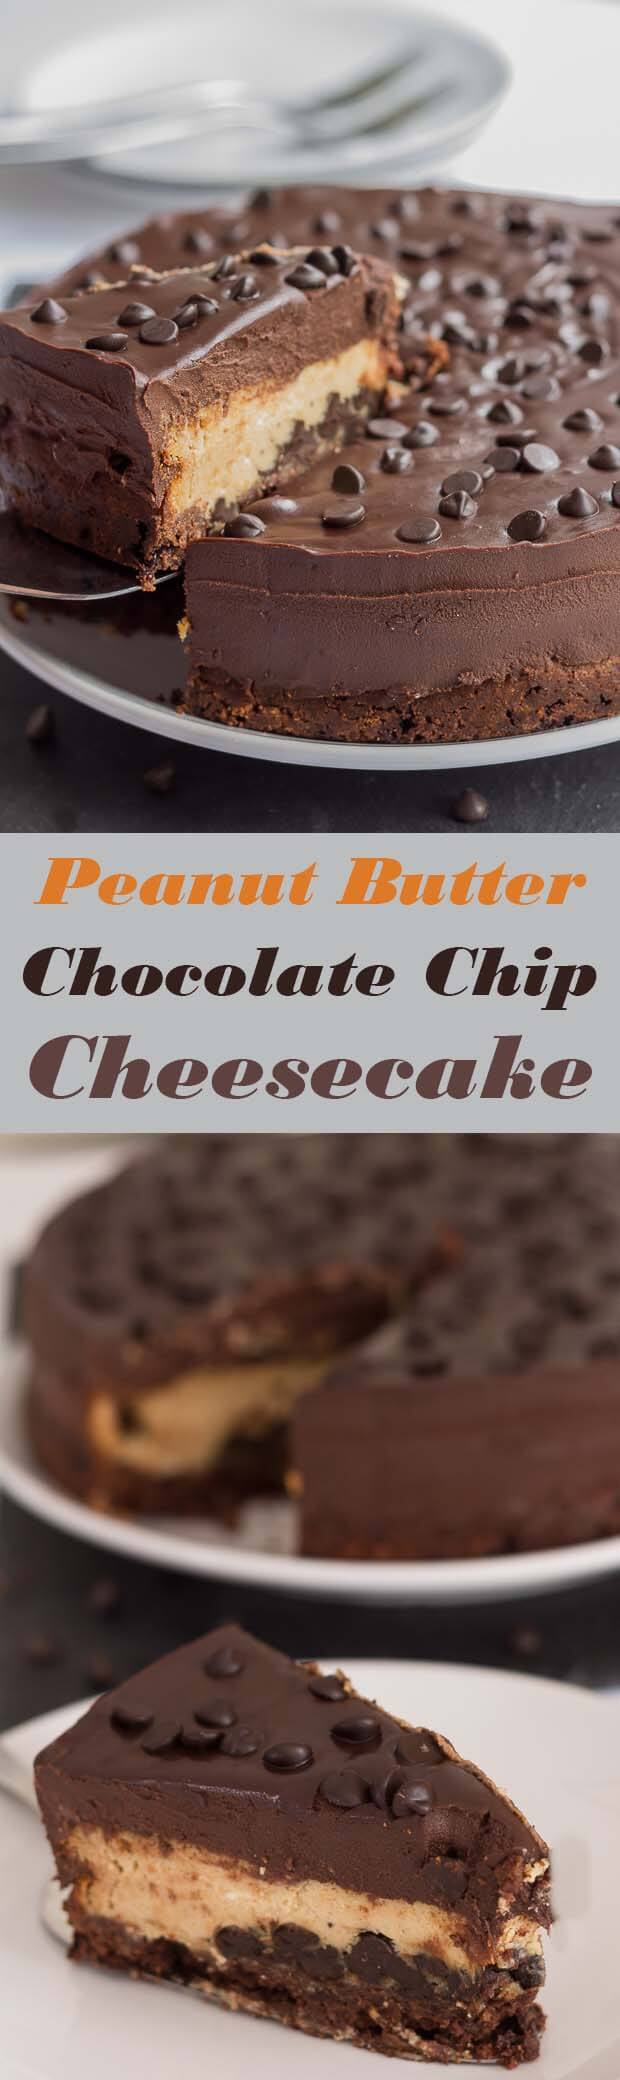 This peanut butter chocolate chip cheesecake is a piece of heaven. Indulgent, sweet and creamy. A mouthwatering chocolate biscuit base topped with delicious chocolate chips and peanut butter then finished with a velvety chocolate ganache!